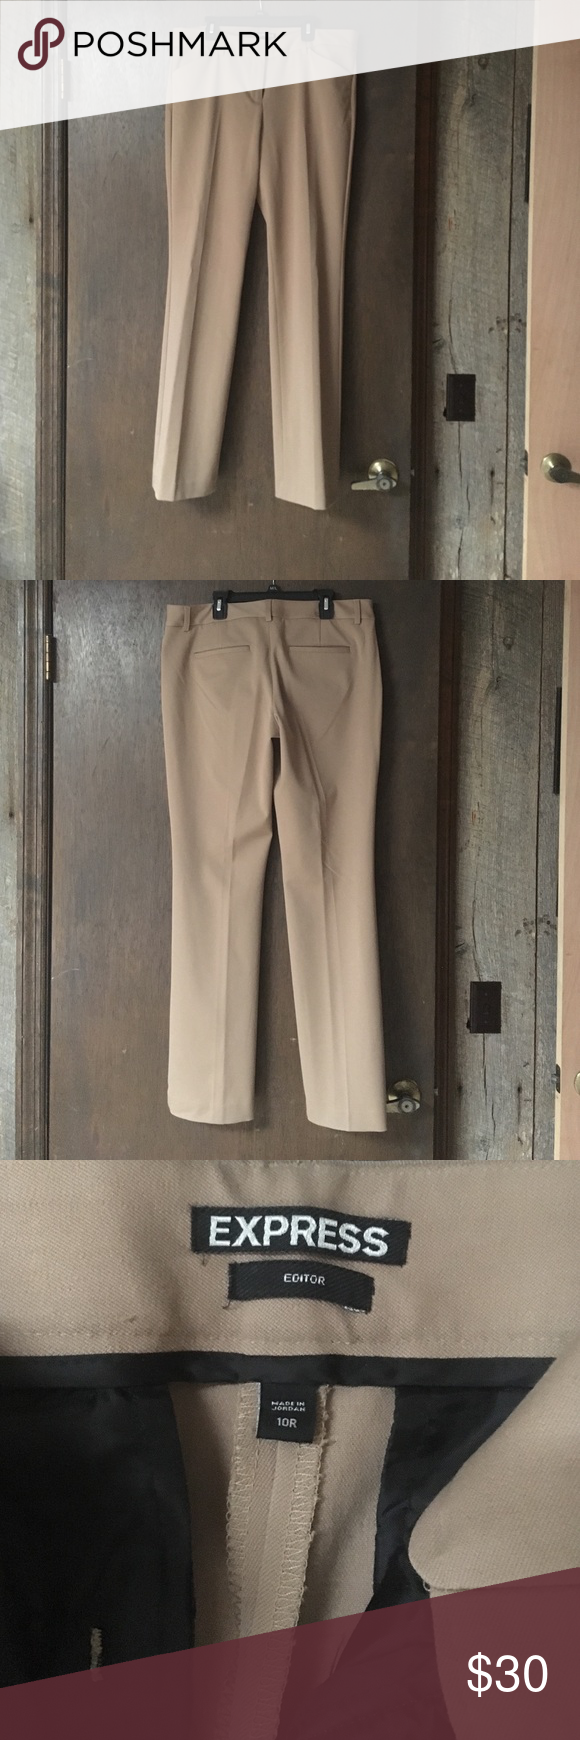 Express Editor dress pants Excellent condition. Worn twice. 32.5 inseam. Express Pants Straight Leg